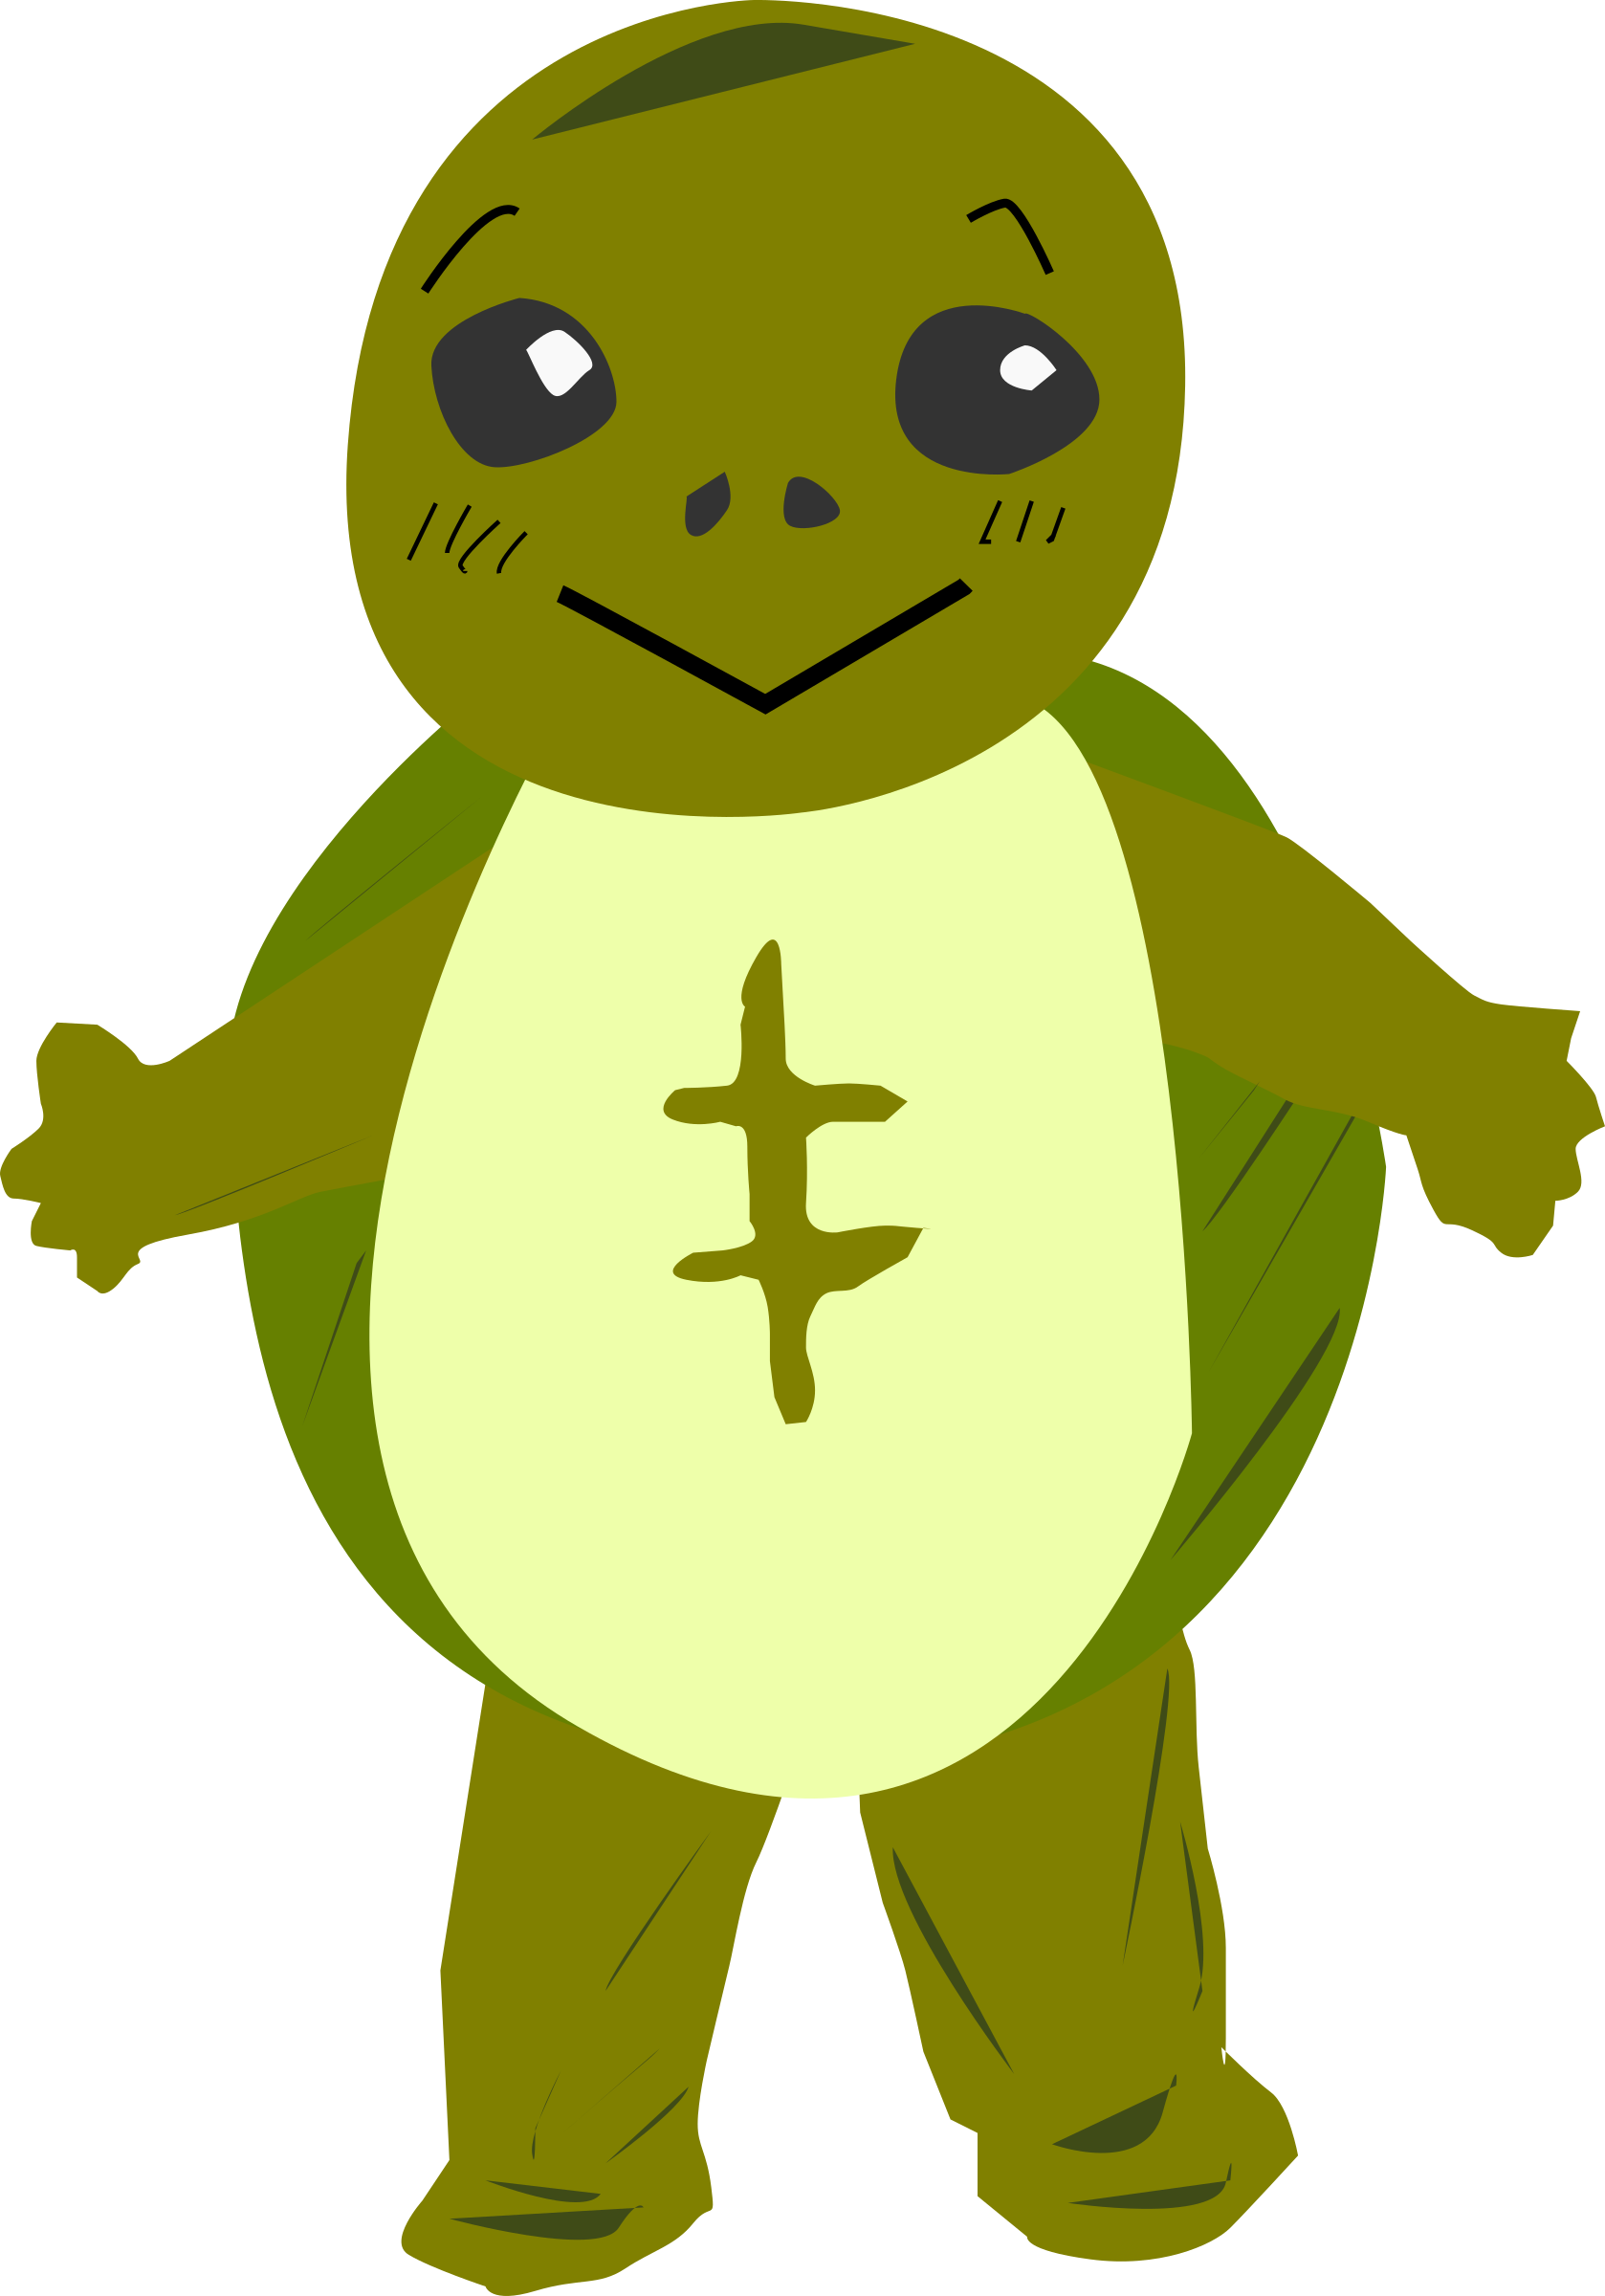 Clipart character graphic free Clipart - turtle character graphic free